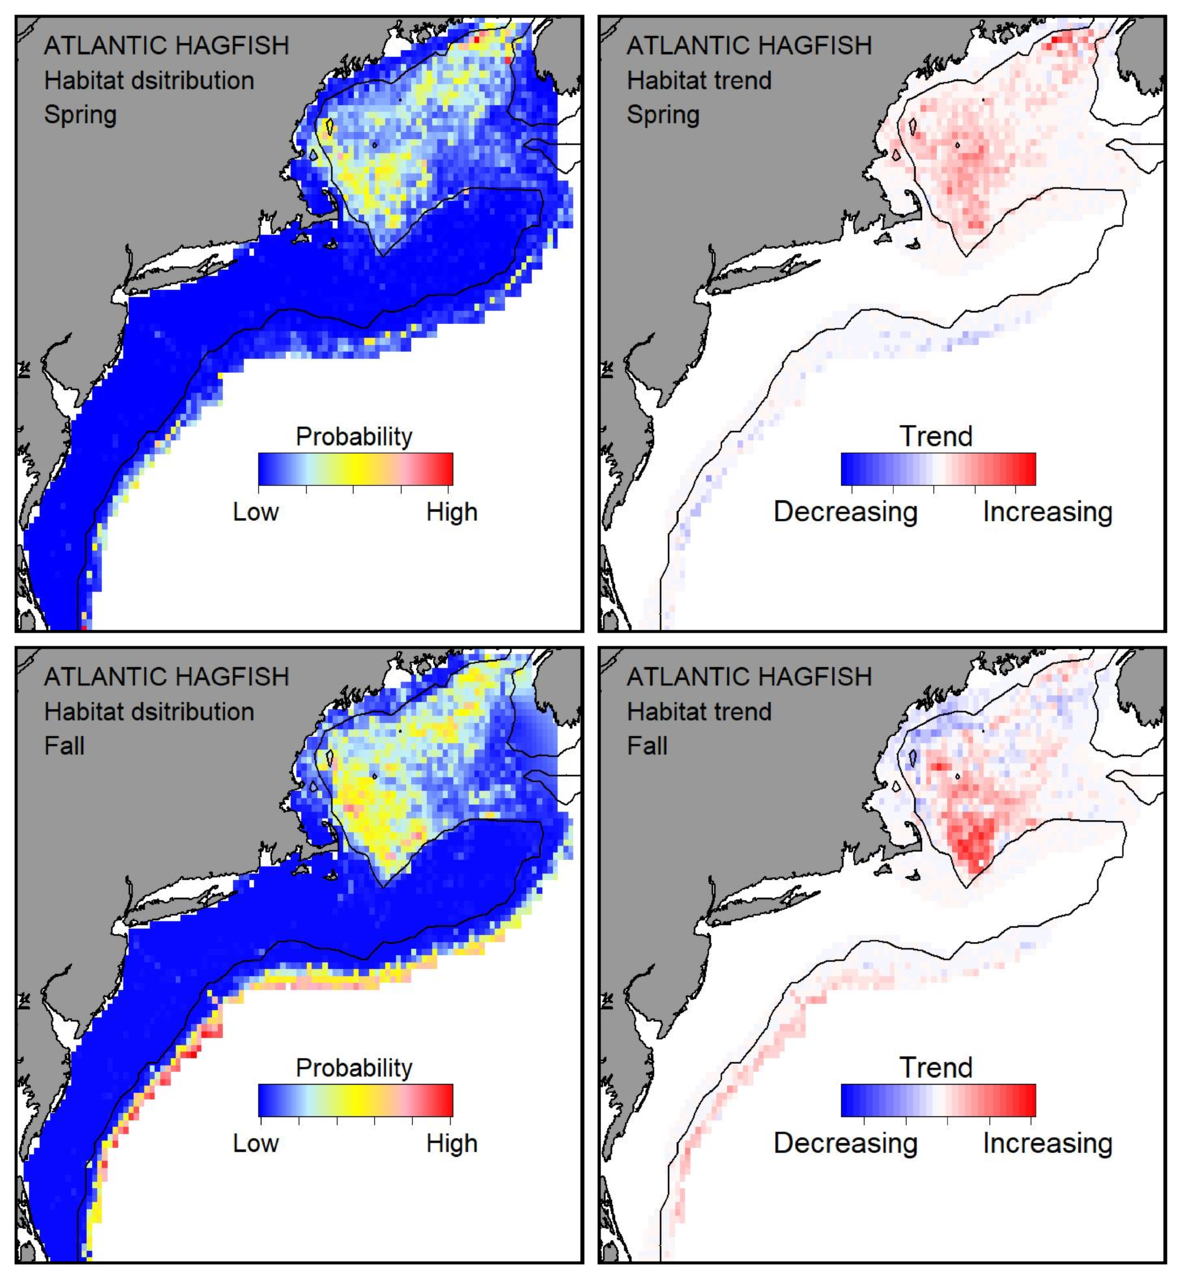 Top row: Probable habitat distribution for Atlantic hagfish showing the highest concentration and increasing trend in the Gulf of Maine during the spring. Bottom row: Probable habitat distribution for Atlantic hagfish showing the highest concentration and increasing trend in the Gulf of Maine during the fall.